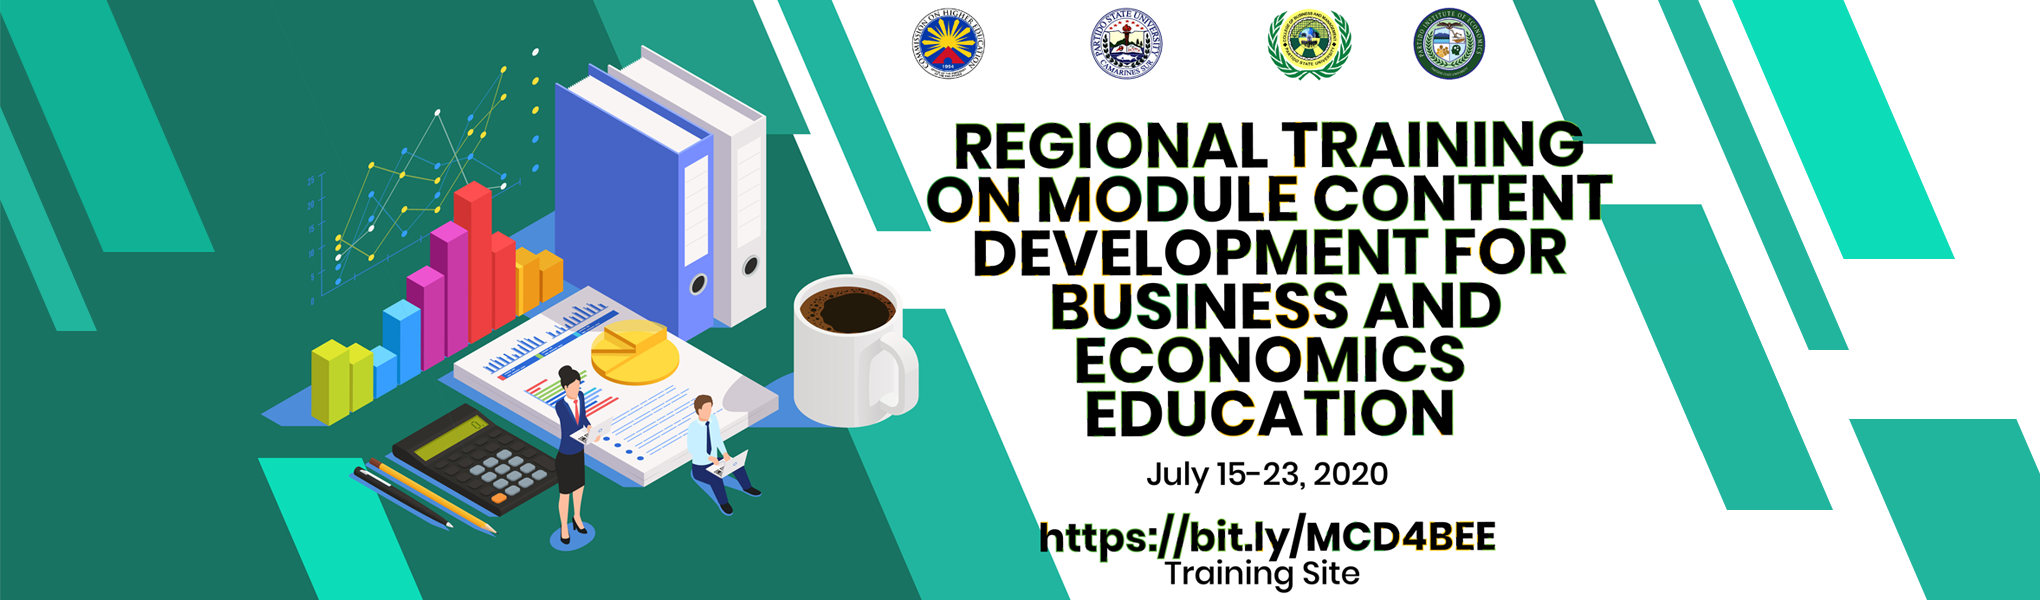 Regional Training on Module Content Development for Business and Economics Education